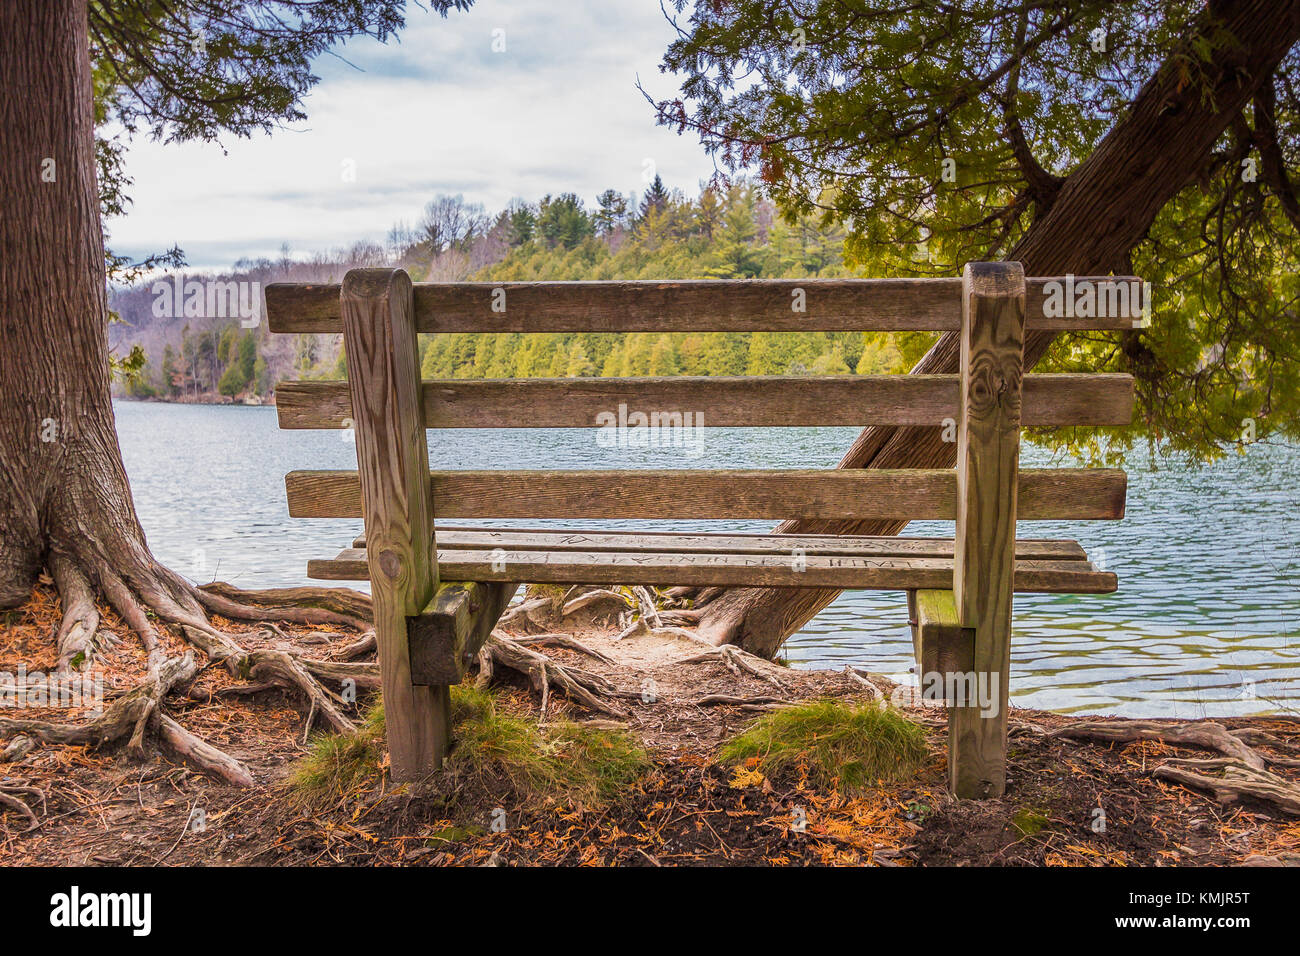 Serene setting, a park bench overlooking a calm lake. Green Lakes, Syracuse NY - Stock Image